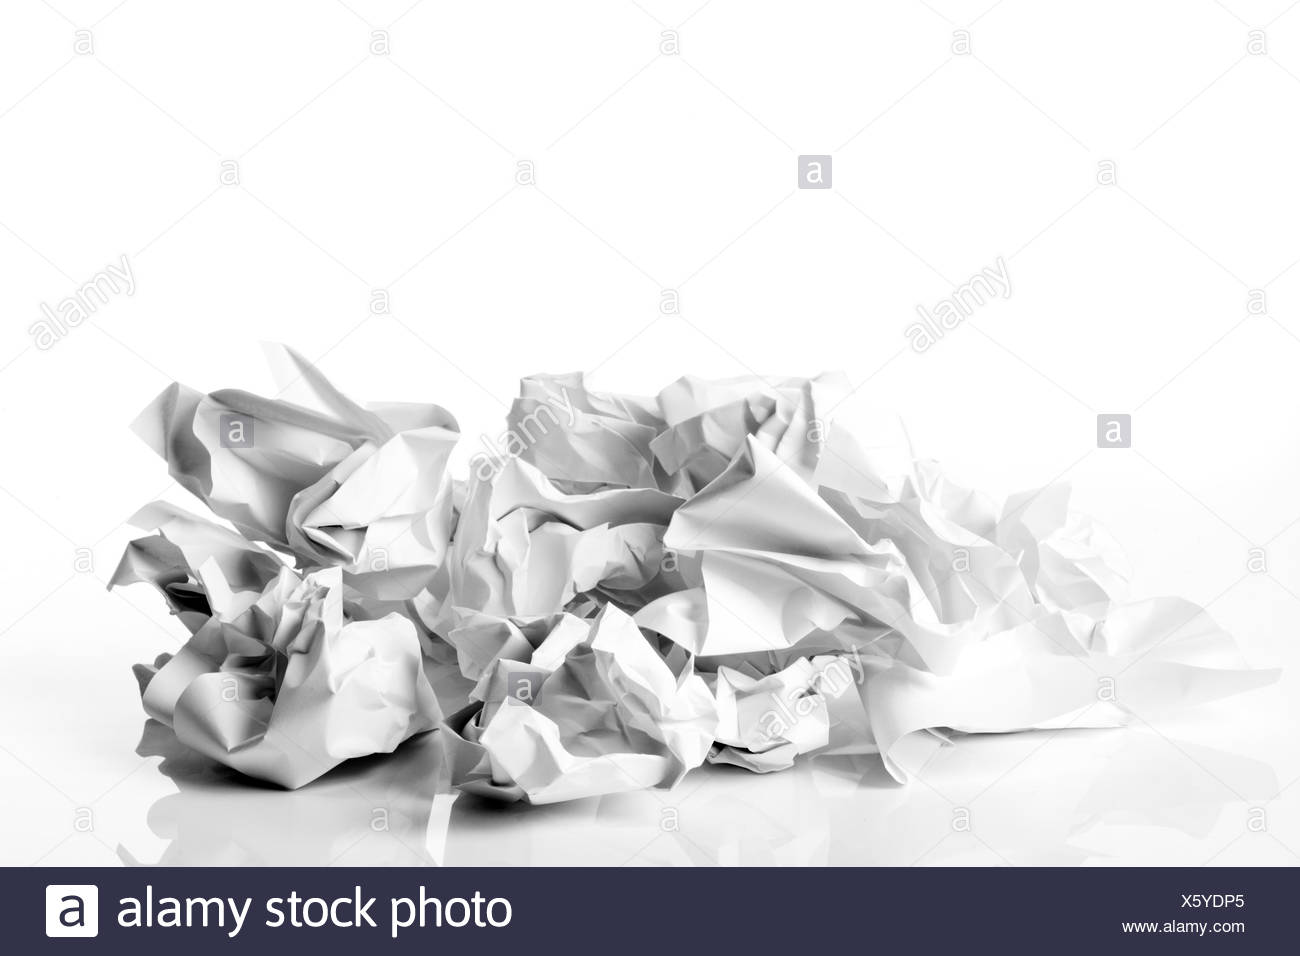 Crumpled-up paper - Stock Image